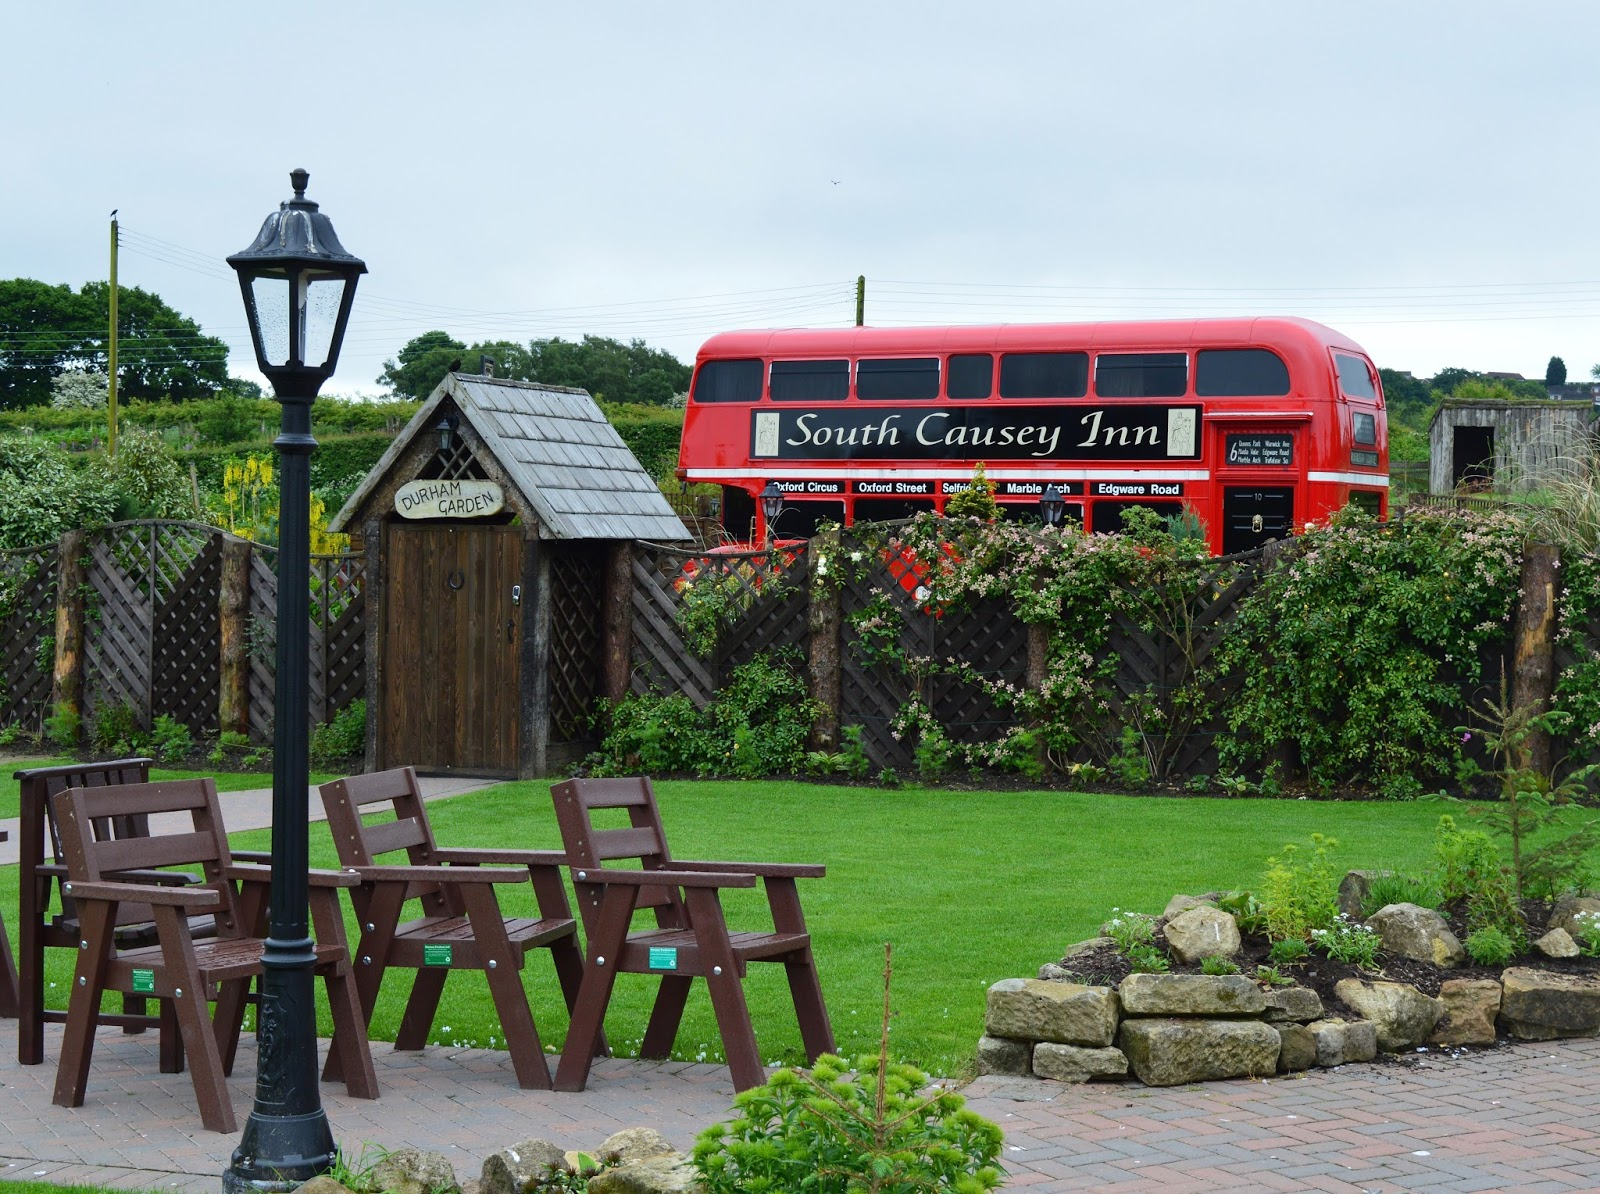 5 unique places to celebrate your wedding anniversary in North East England | London Bus with Hot tub, County Durham